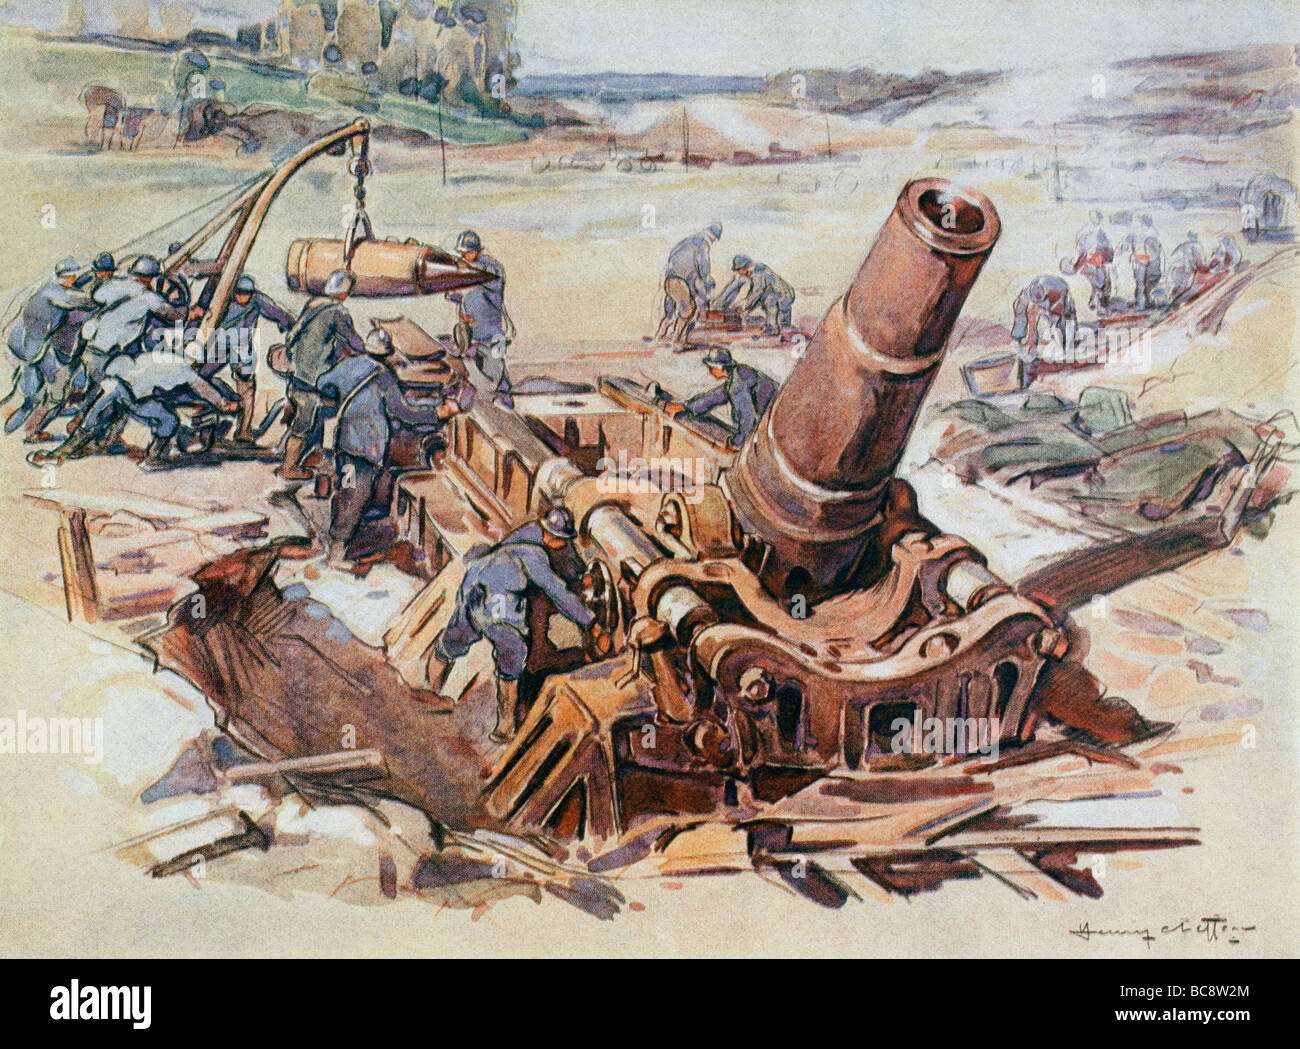 French Army 370mm mortar in action during First World War - Stock Image